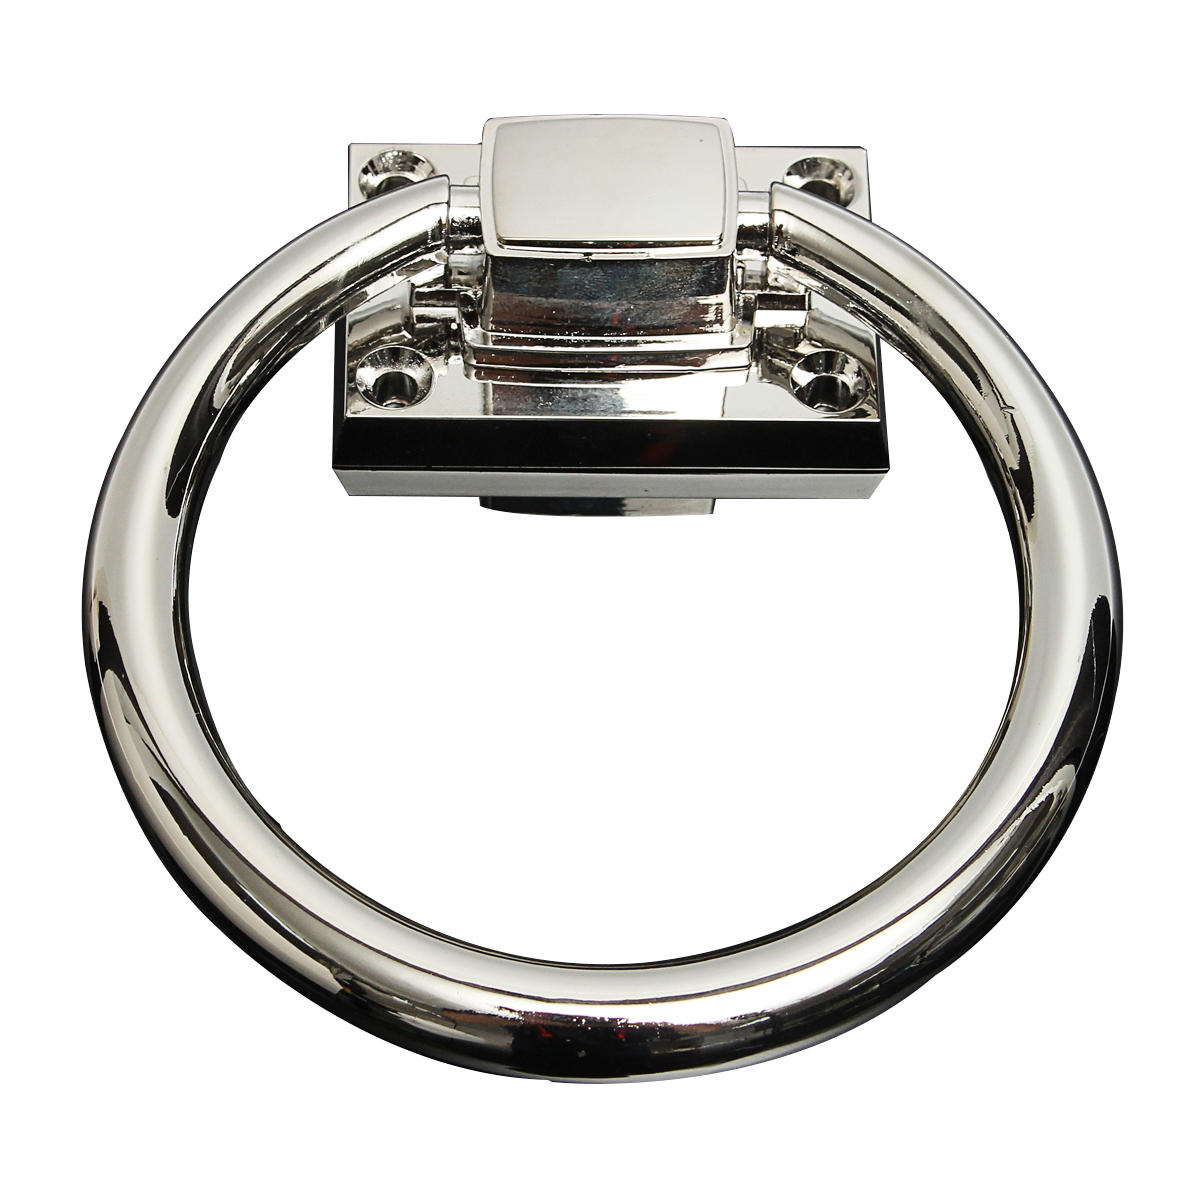 Stainless Steel Knocker Pulls Handle Pull Rings Shiny Silver for Wooden Door Chair